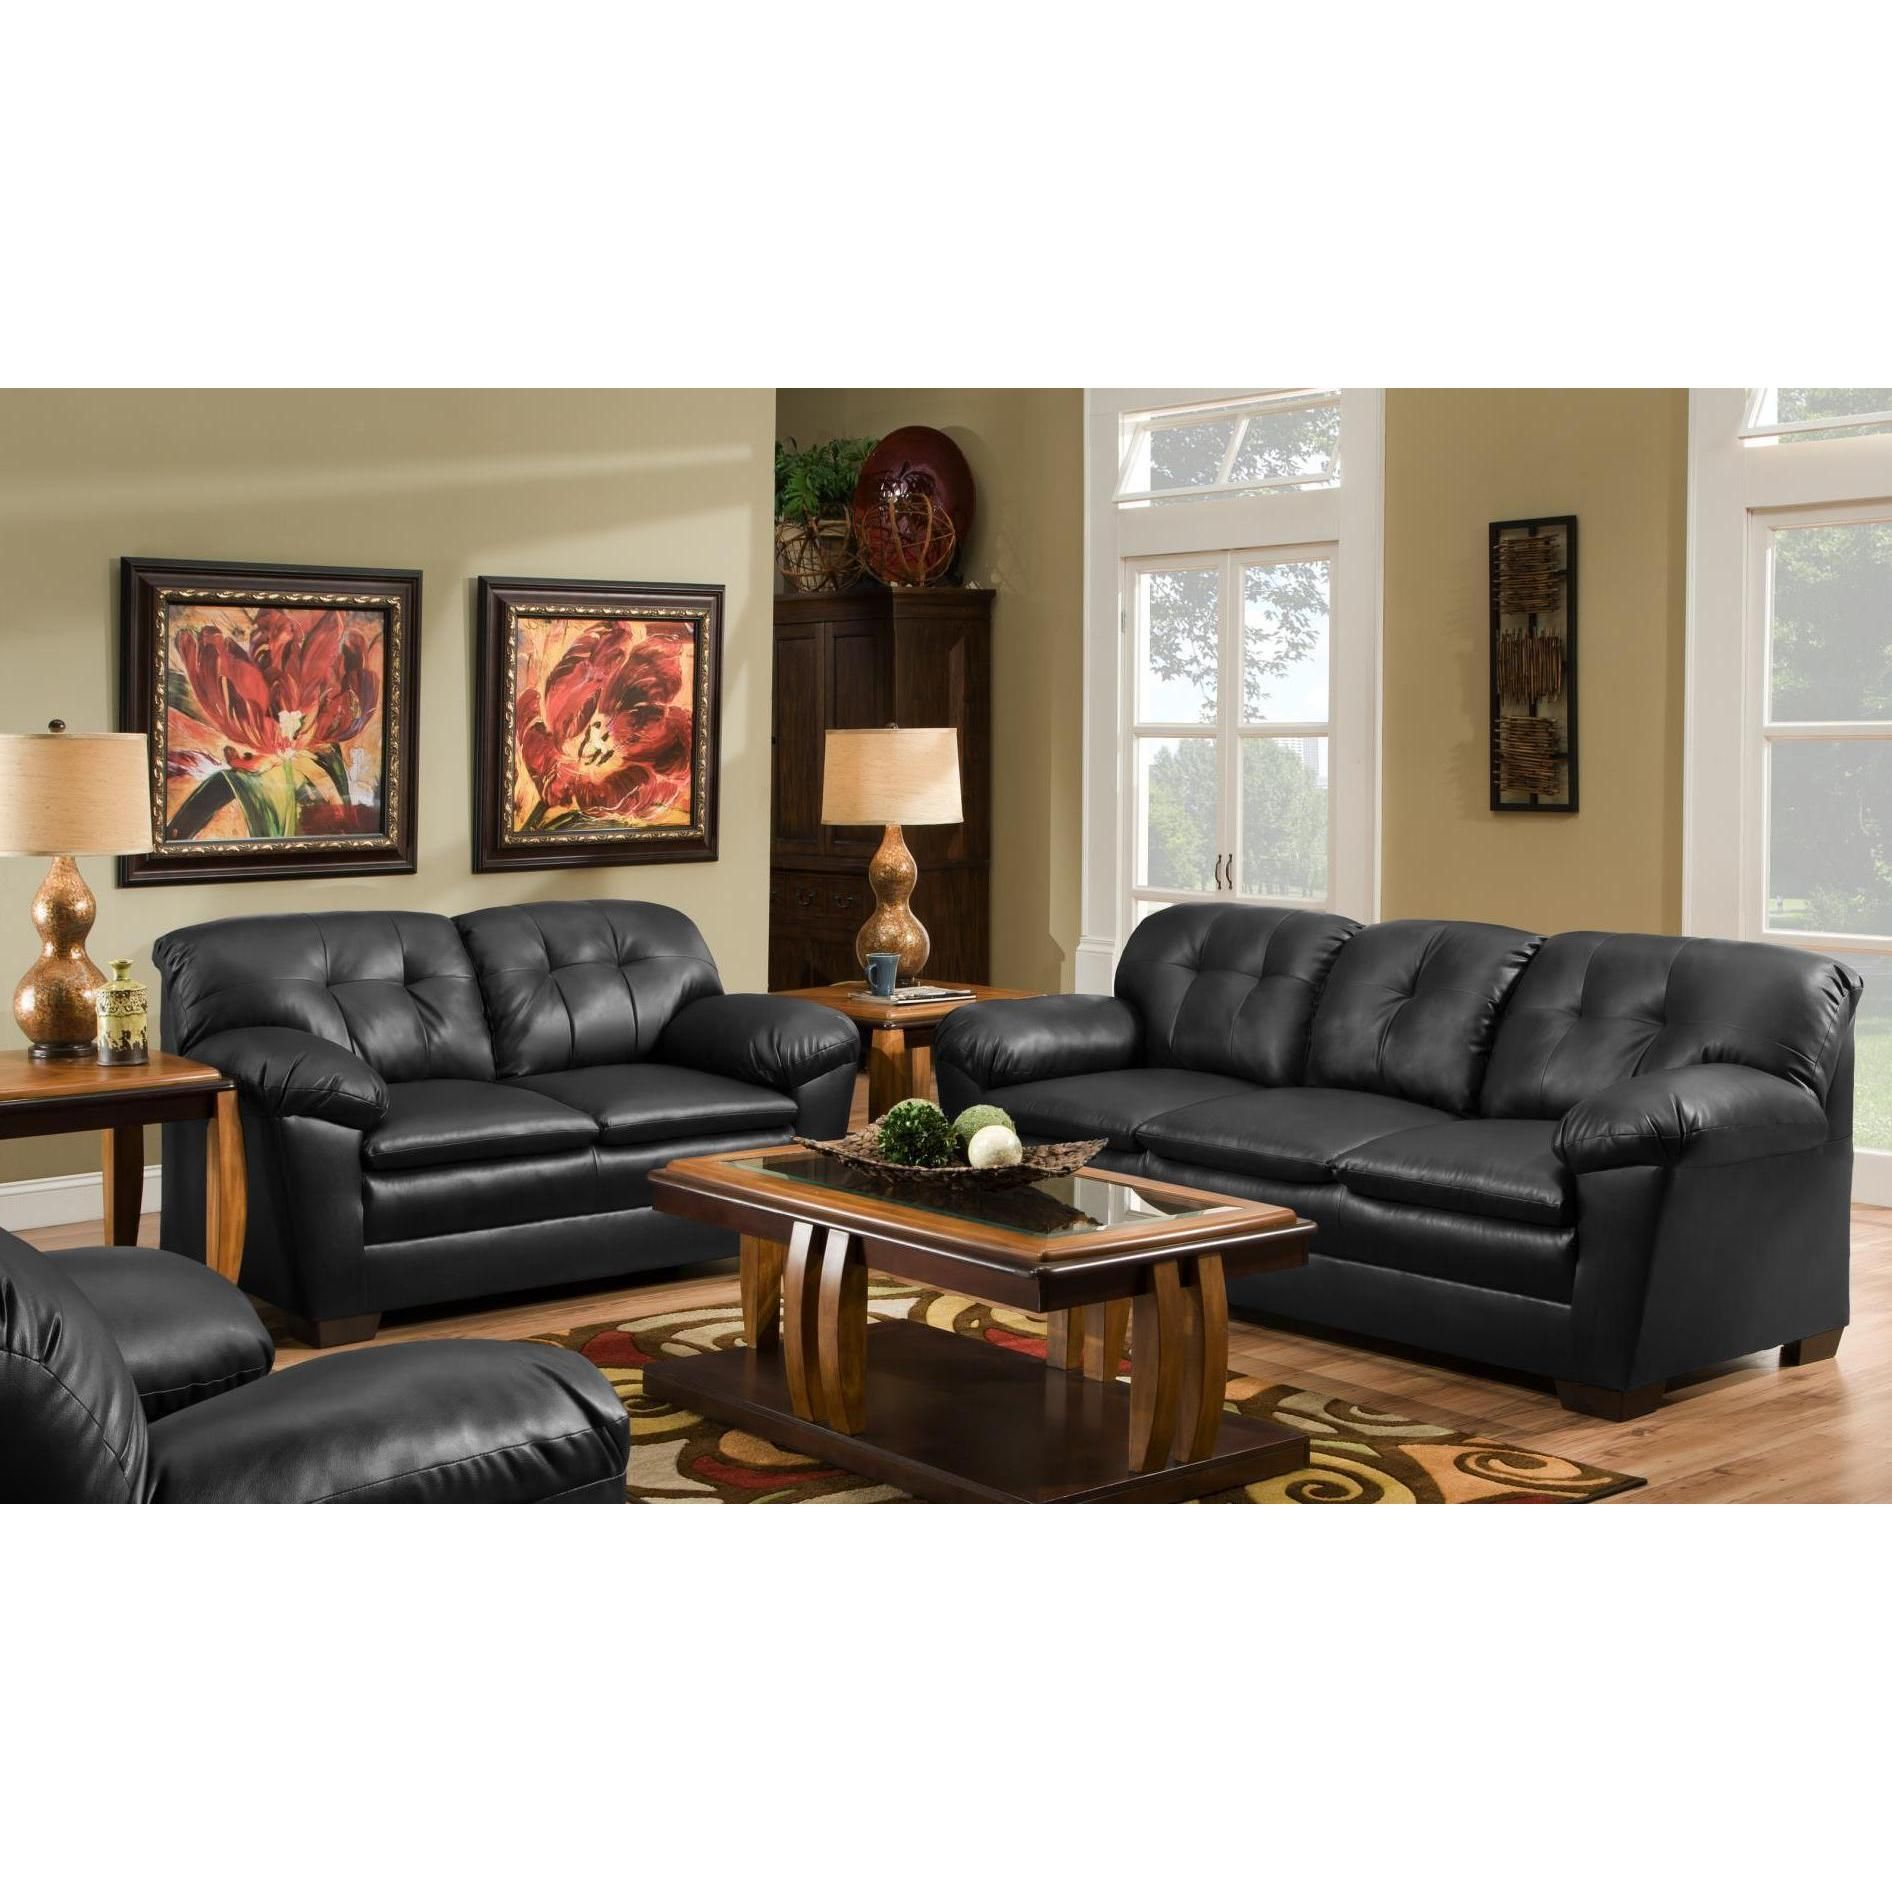 Peachy Sofa Trendz Cole Black Faux Leather Sofa And Loveseat Set Pdpeps Interior Chair Design Pdpepsorg